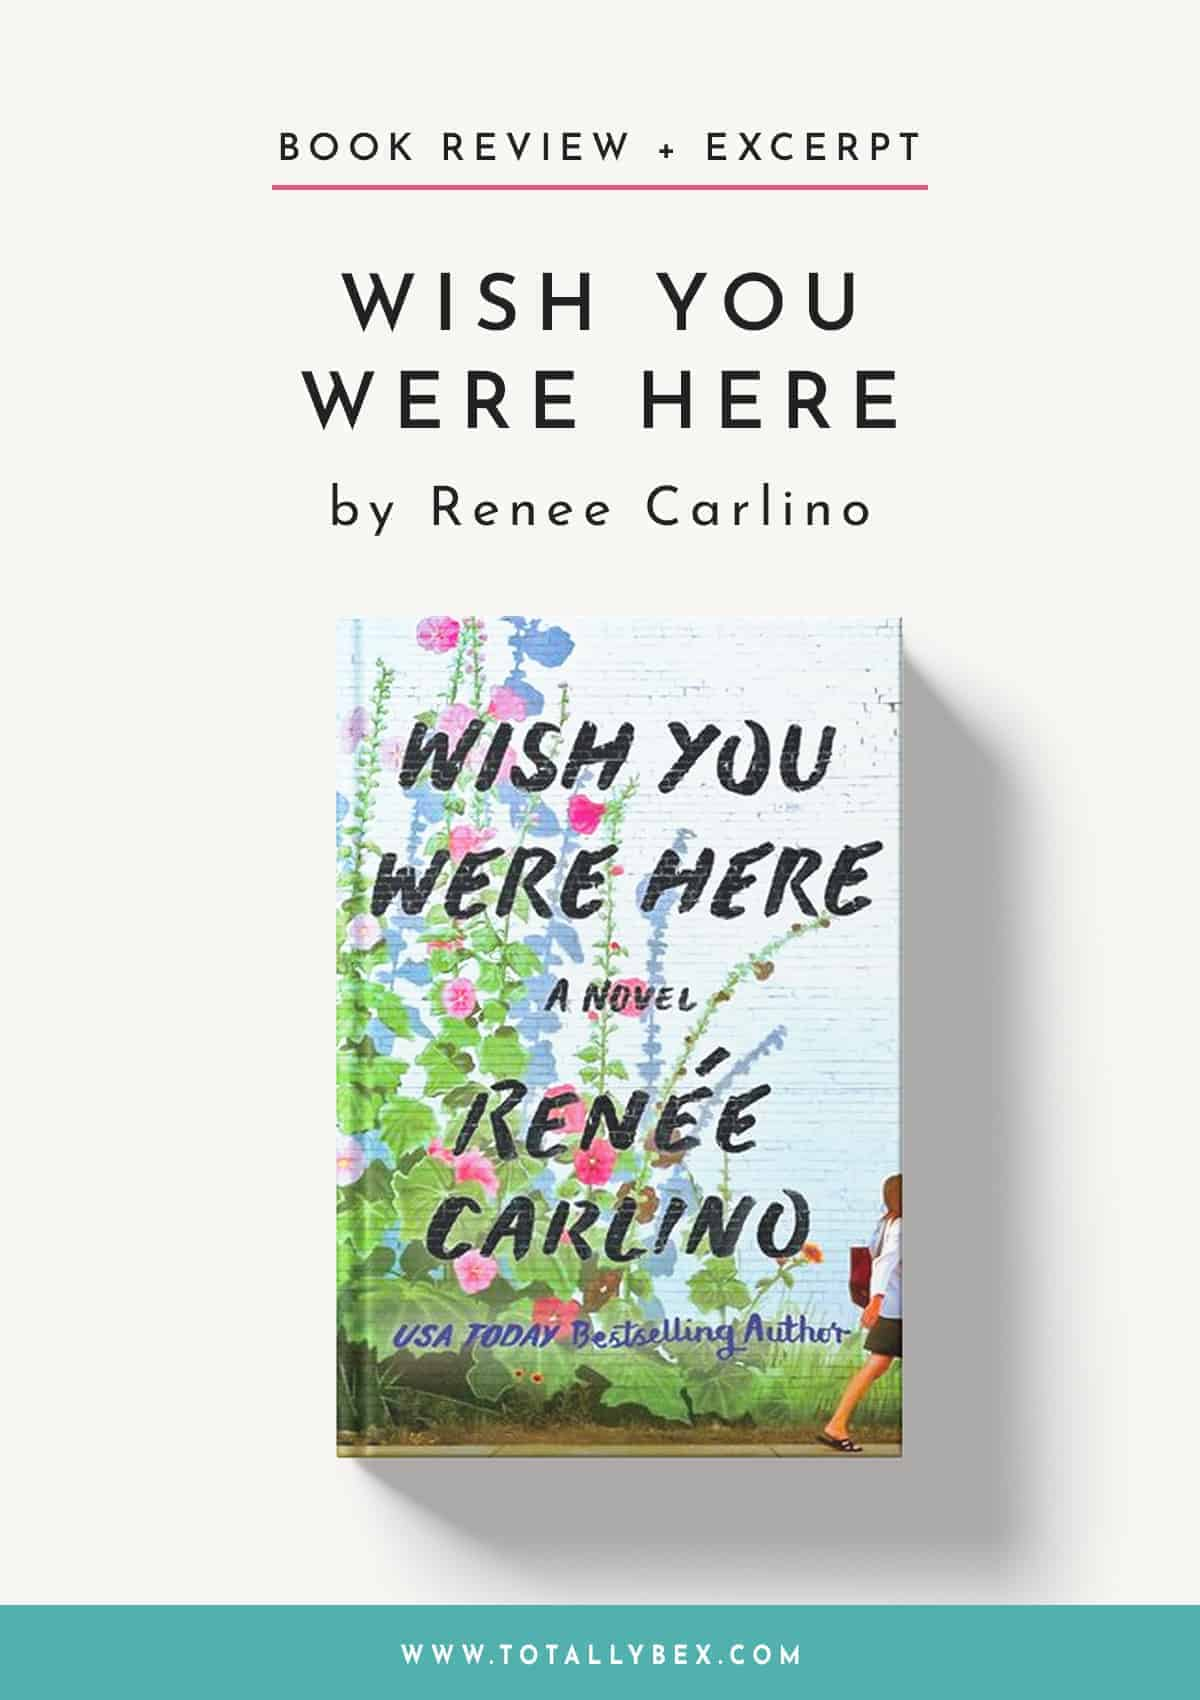 Wish You Were Here by Renee Carlino-Book Review+Excerpt